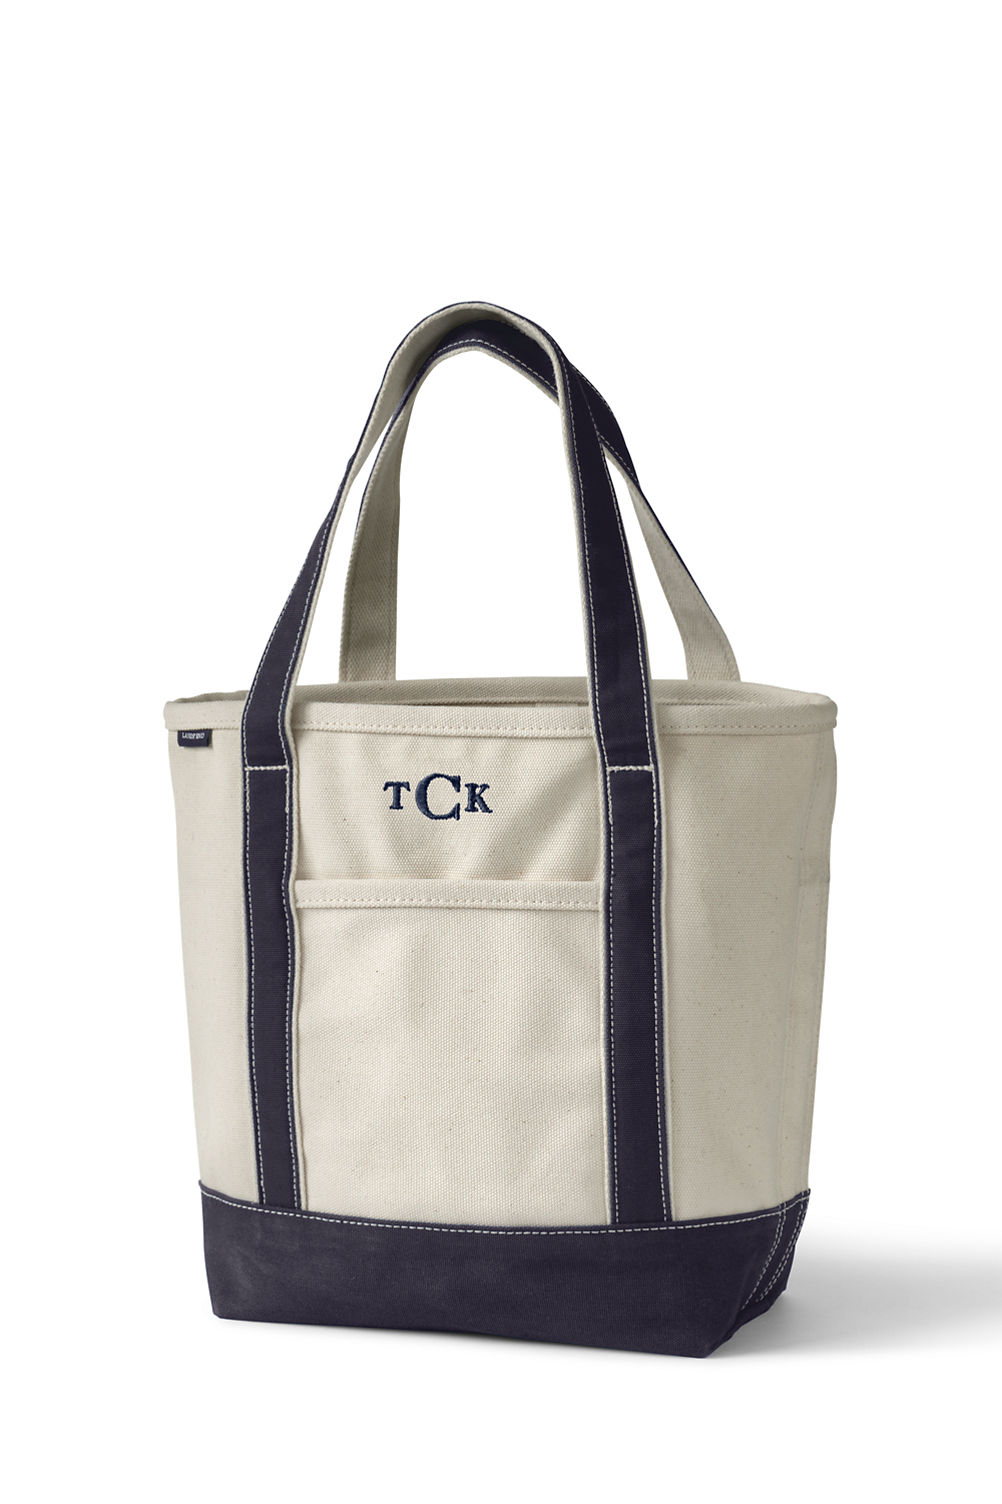 natural canvas tote bag from lands end